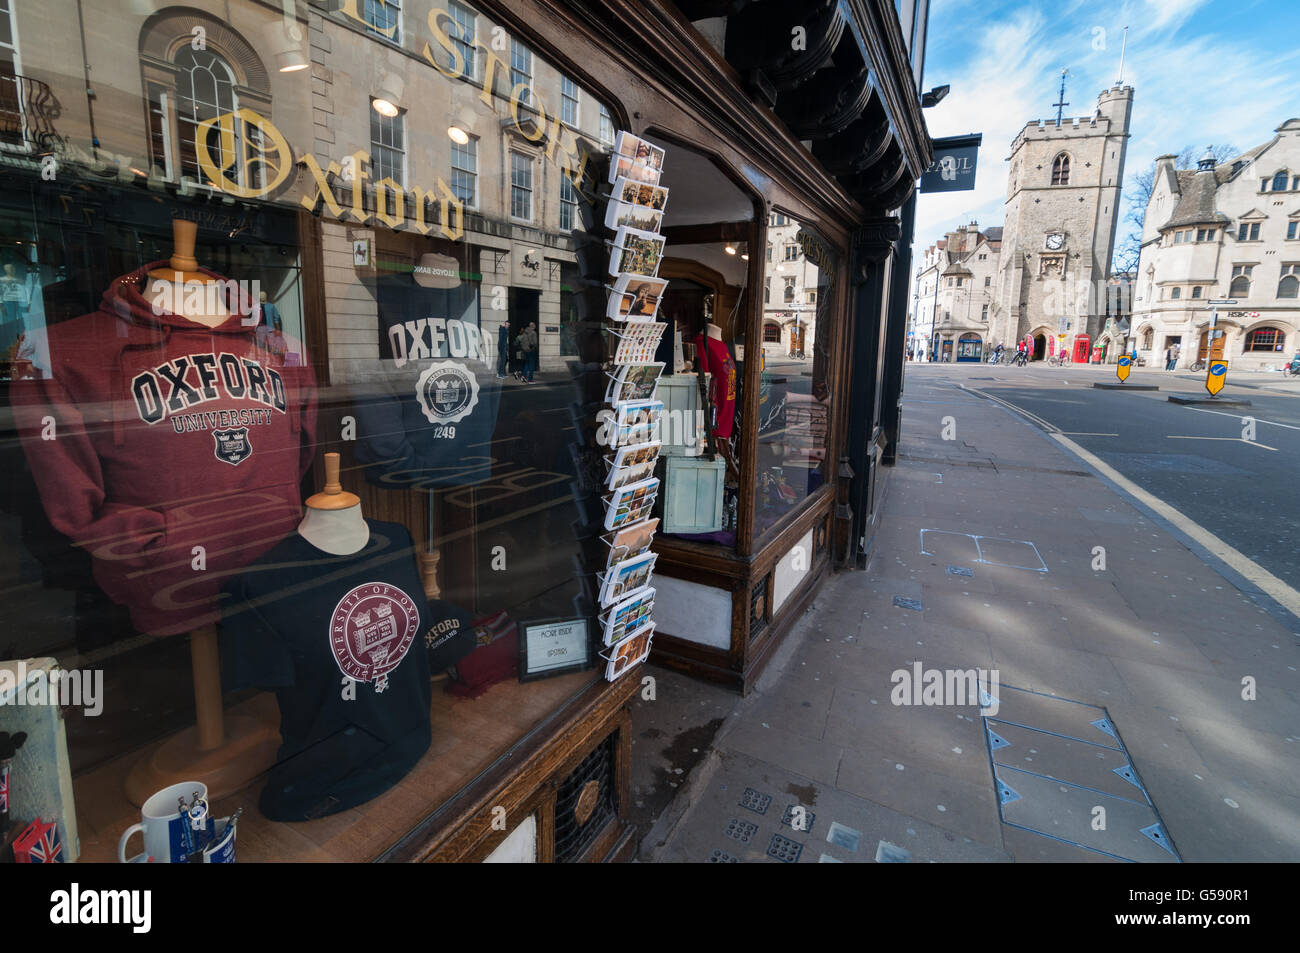 View of the Oxford High Street shop and Carfax Tower, Oxford, United Kingdom - Stock Image